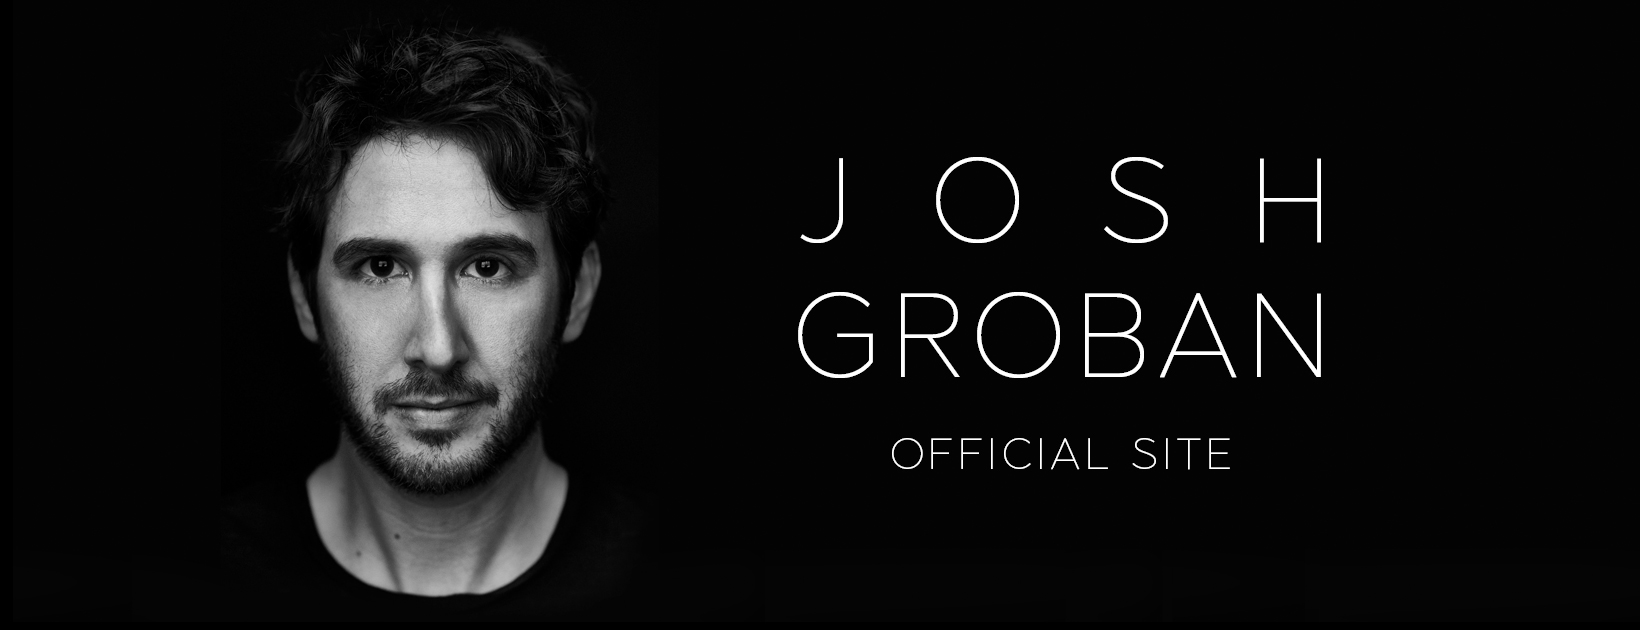 josh groban discography download